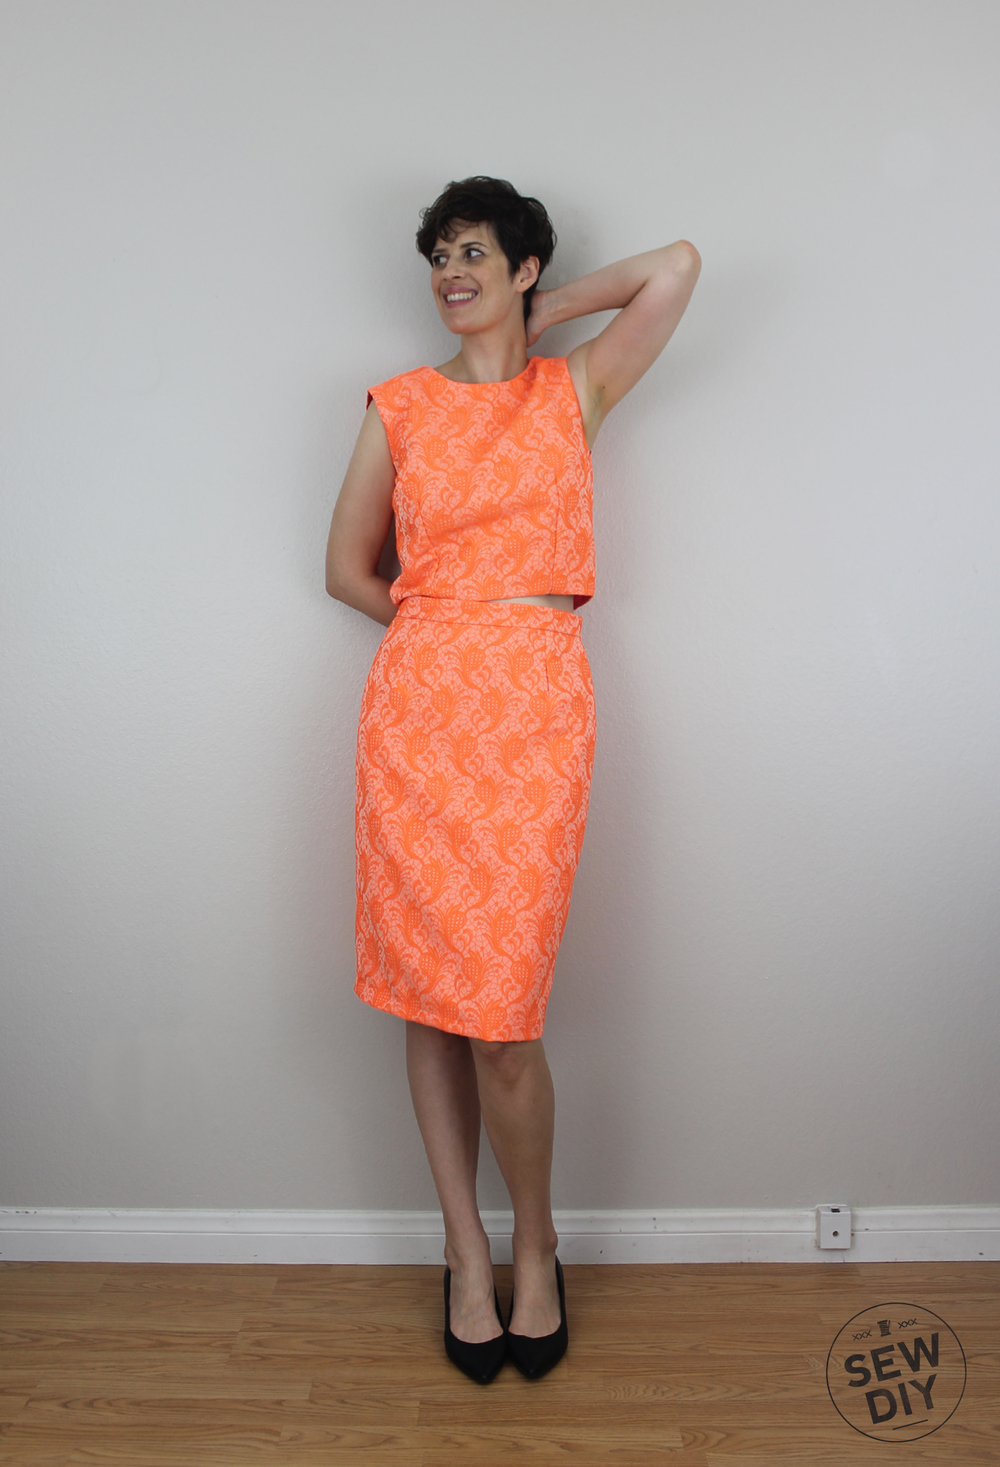 Sew DIY Neon Orange Brocade Pencil Skirt